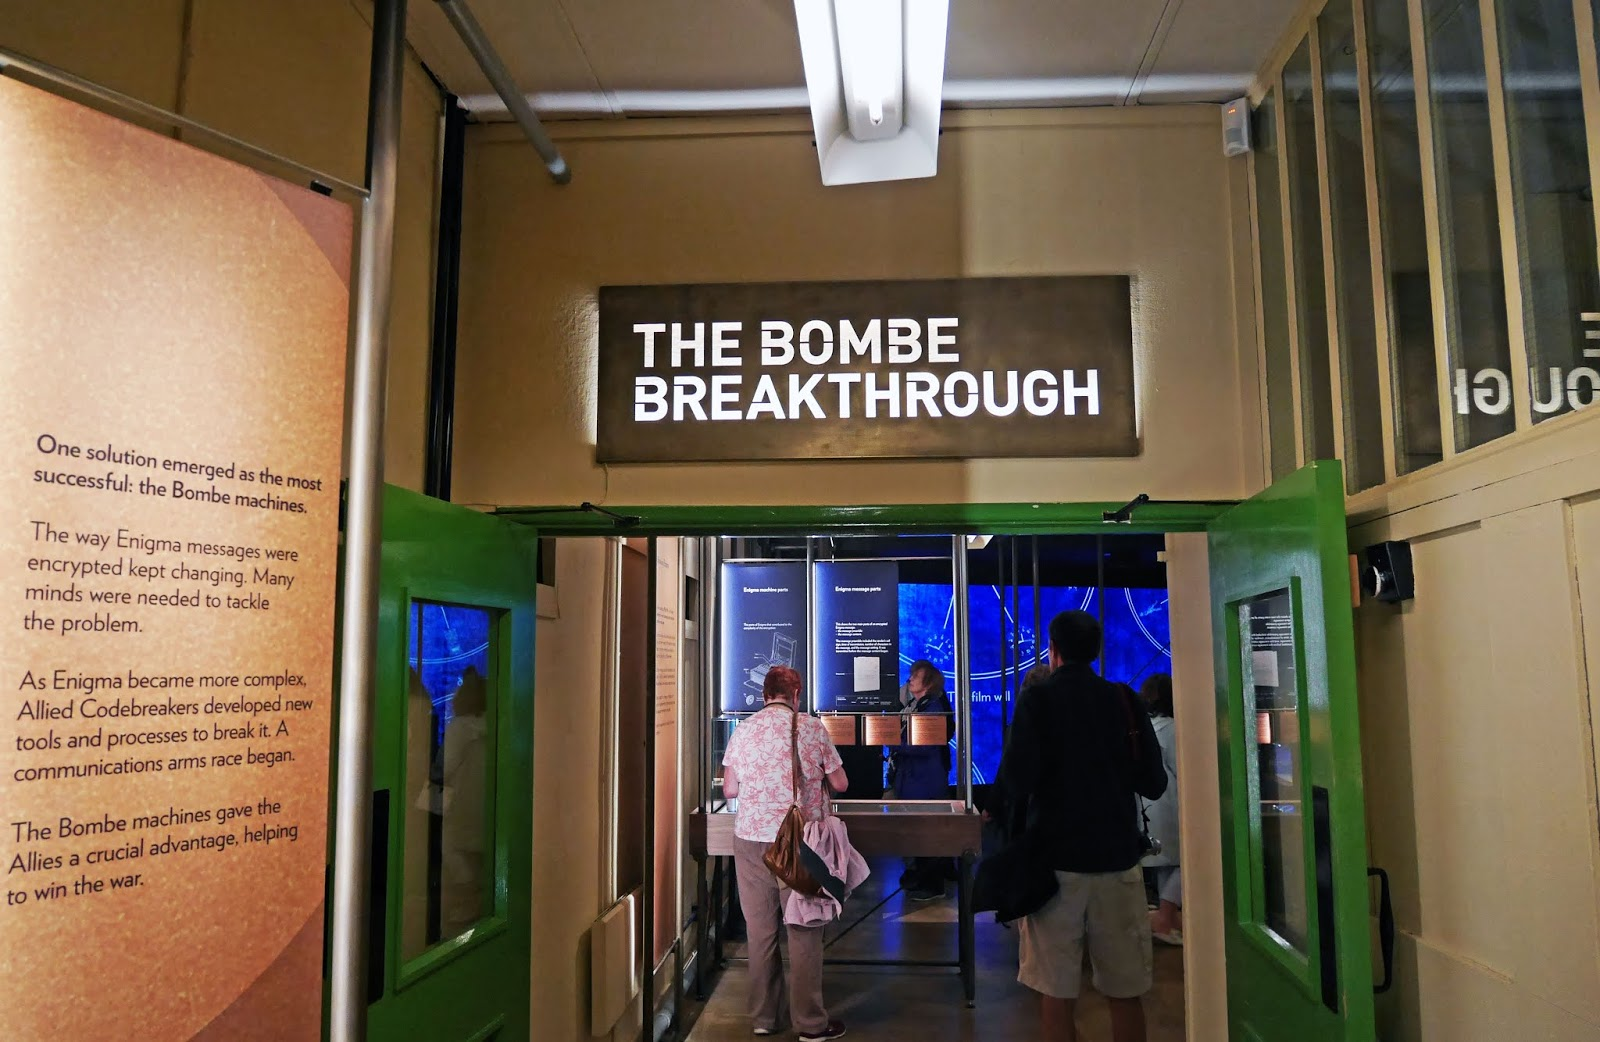 The Bombe Breakthrough exhibition in Hut 11A at Bletchley Park